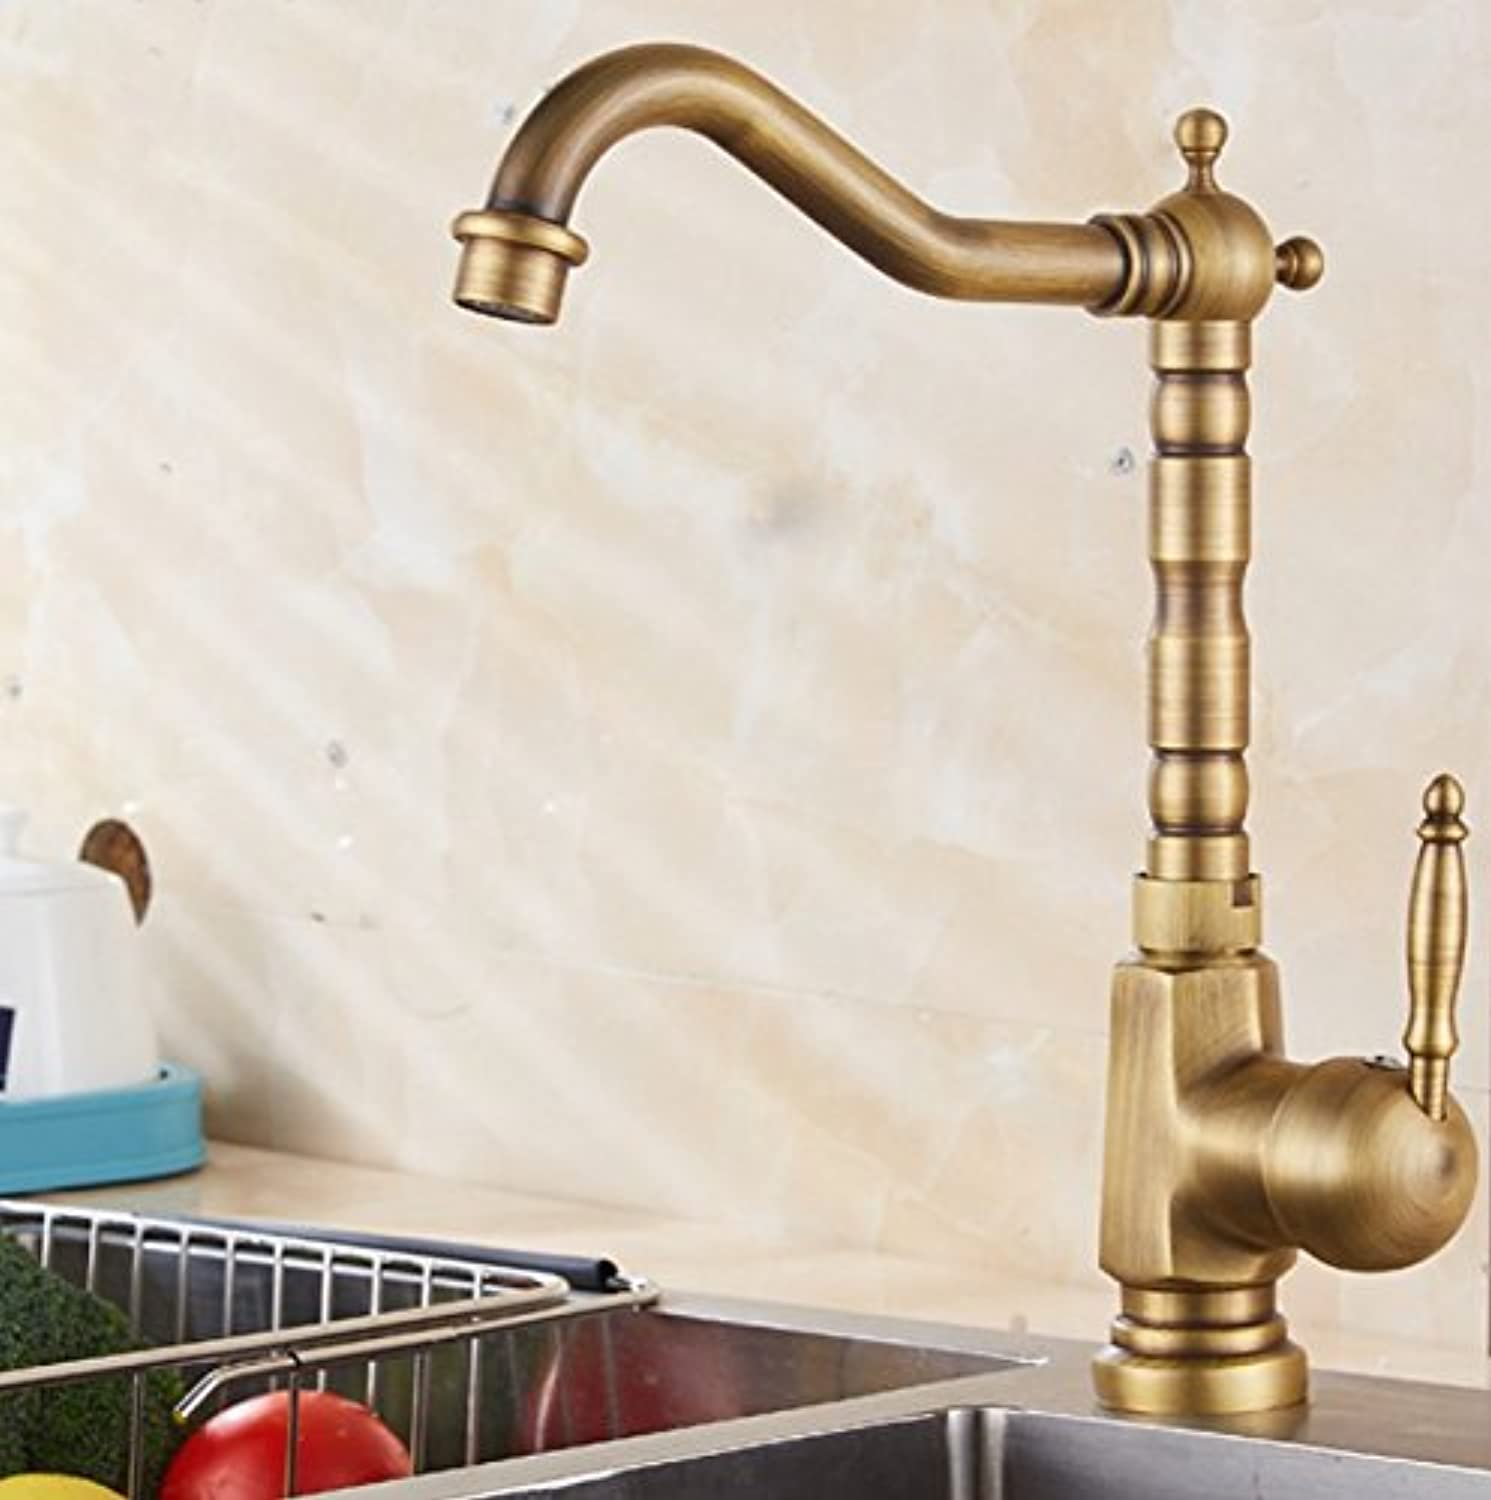 Diongrdk Antique Faucet, European Style Ancient Basin Basin Washbasin, Wash Basin, Hot and Cold Faucet, Bronze color,B